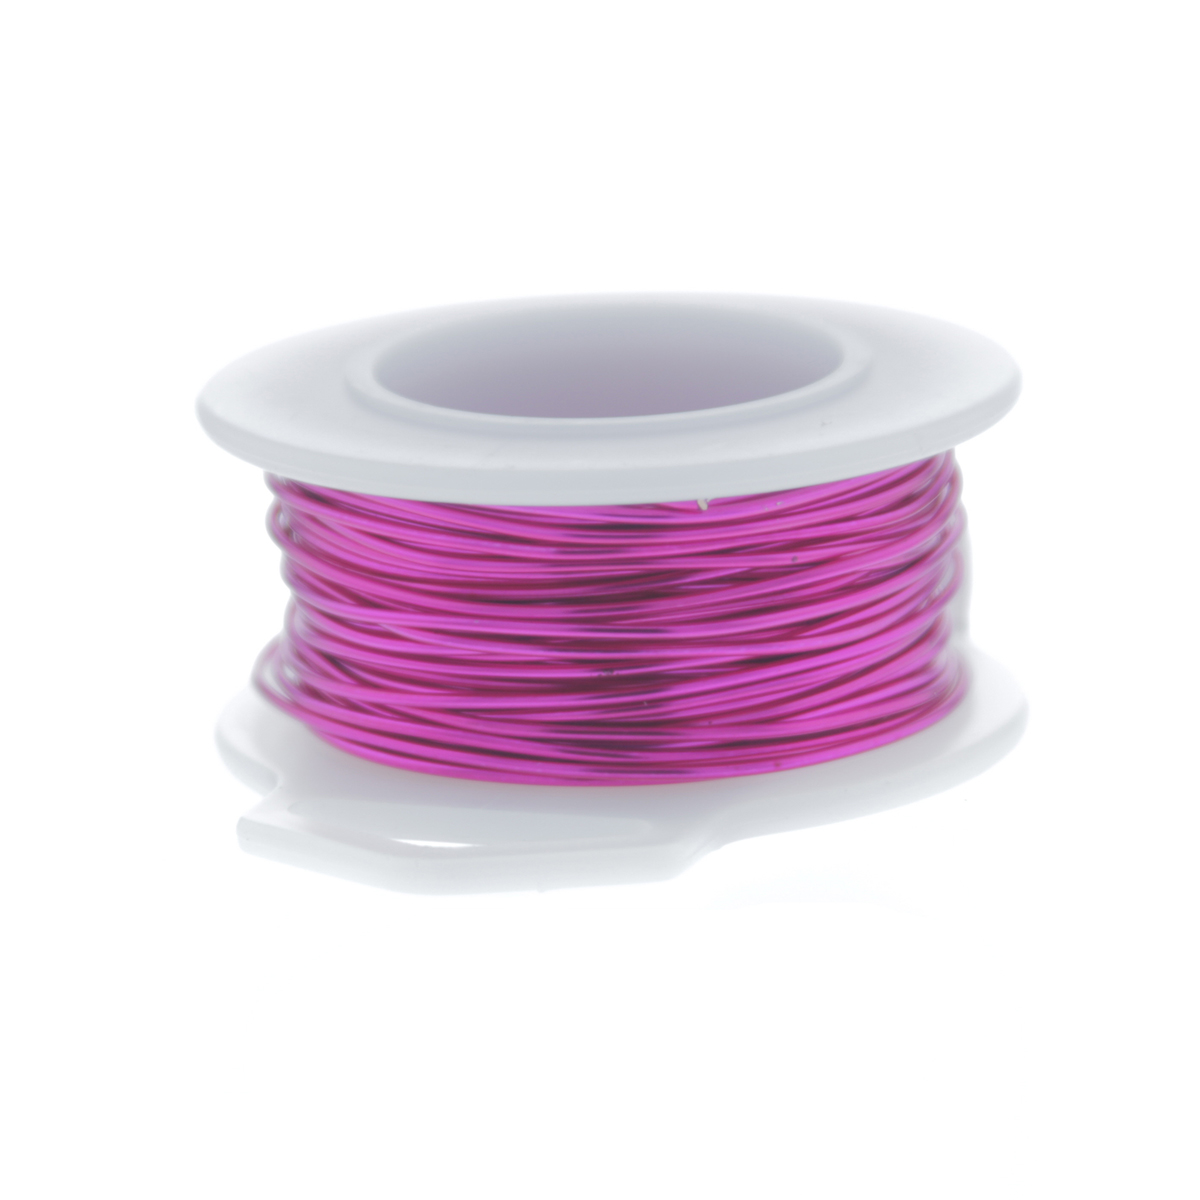 26 Gauge Round Silver Plated Fuchsia Copper Craft Wire - 90 ft